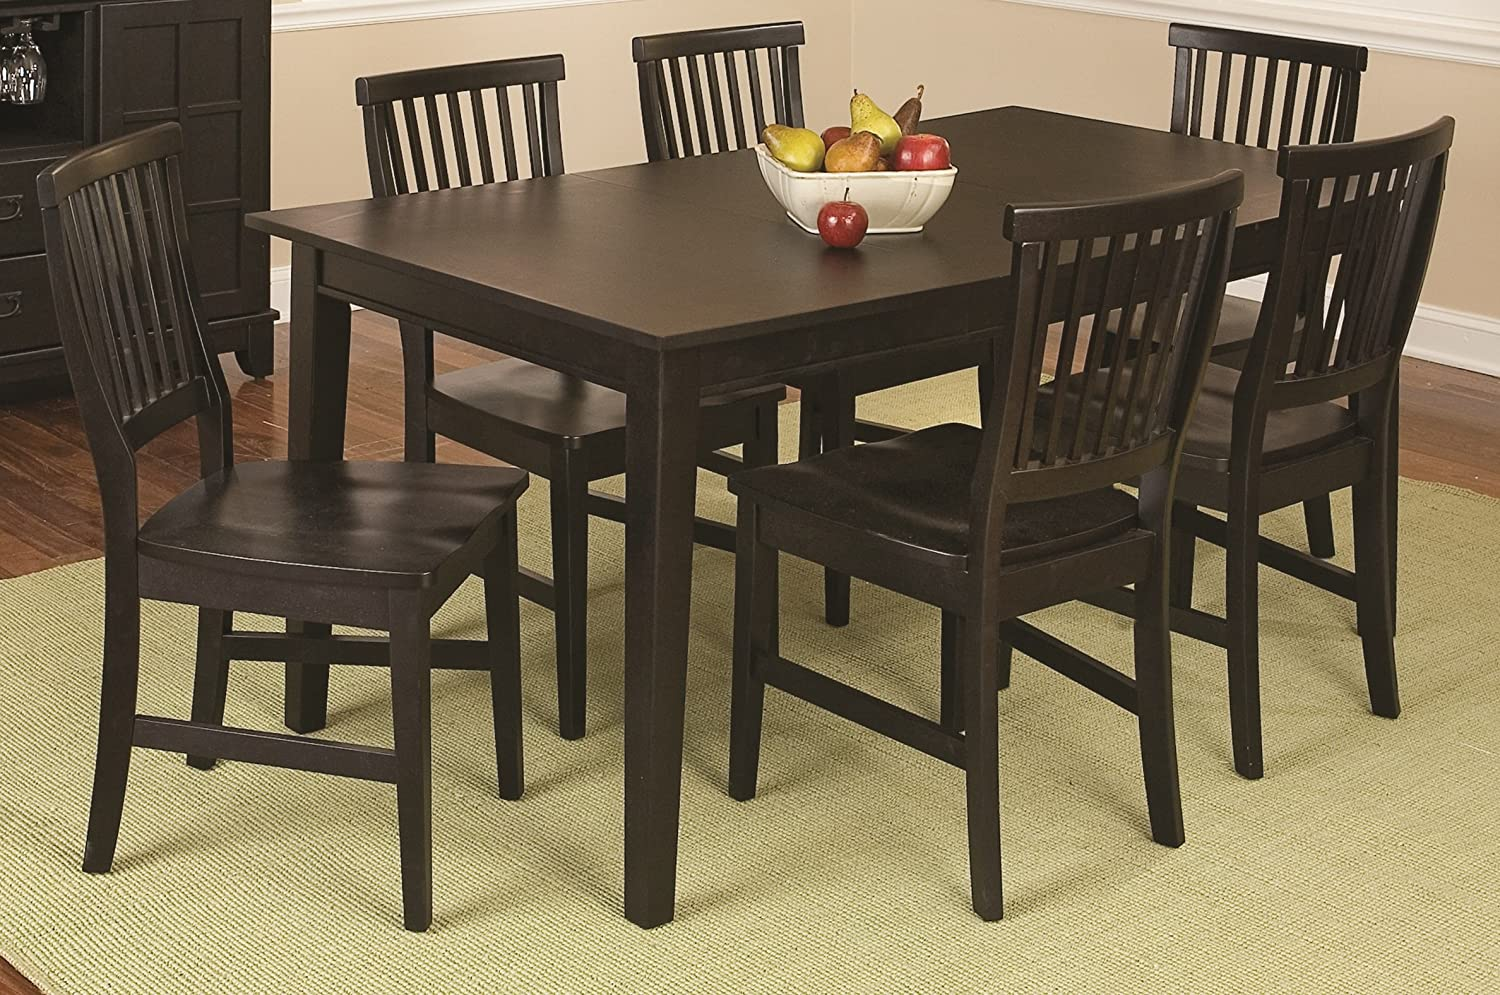 Home Styles Arts and Crafts Black Seven-piece Rectangular Dining Set with Six Chairs, Multi-step Black Finish, and Solid Hardwood Construction